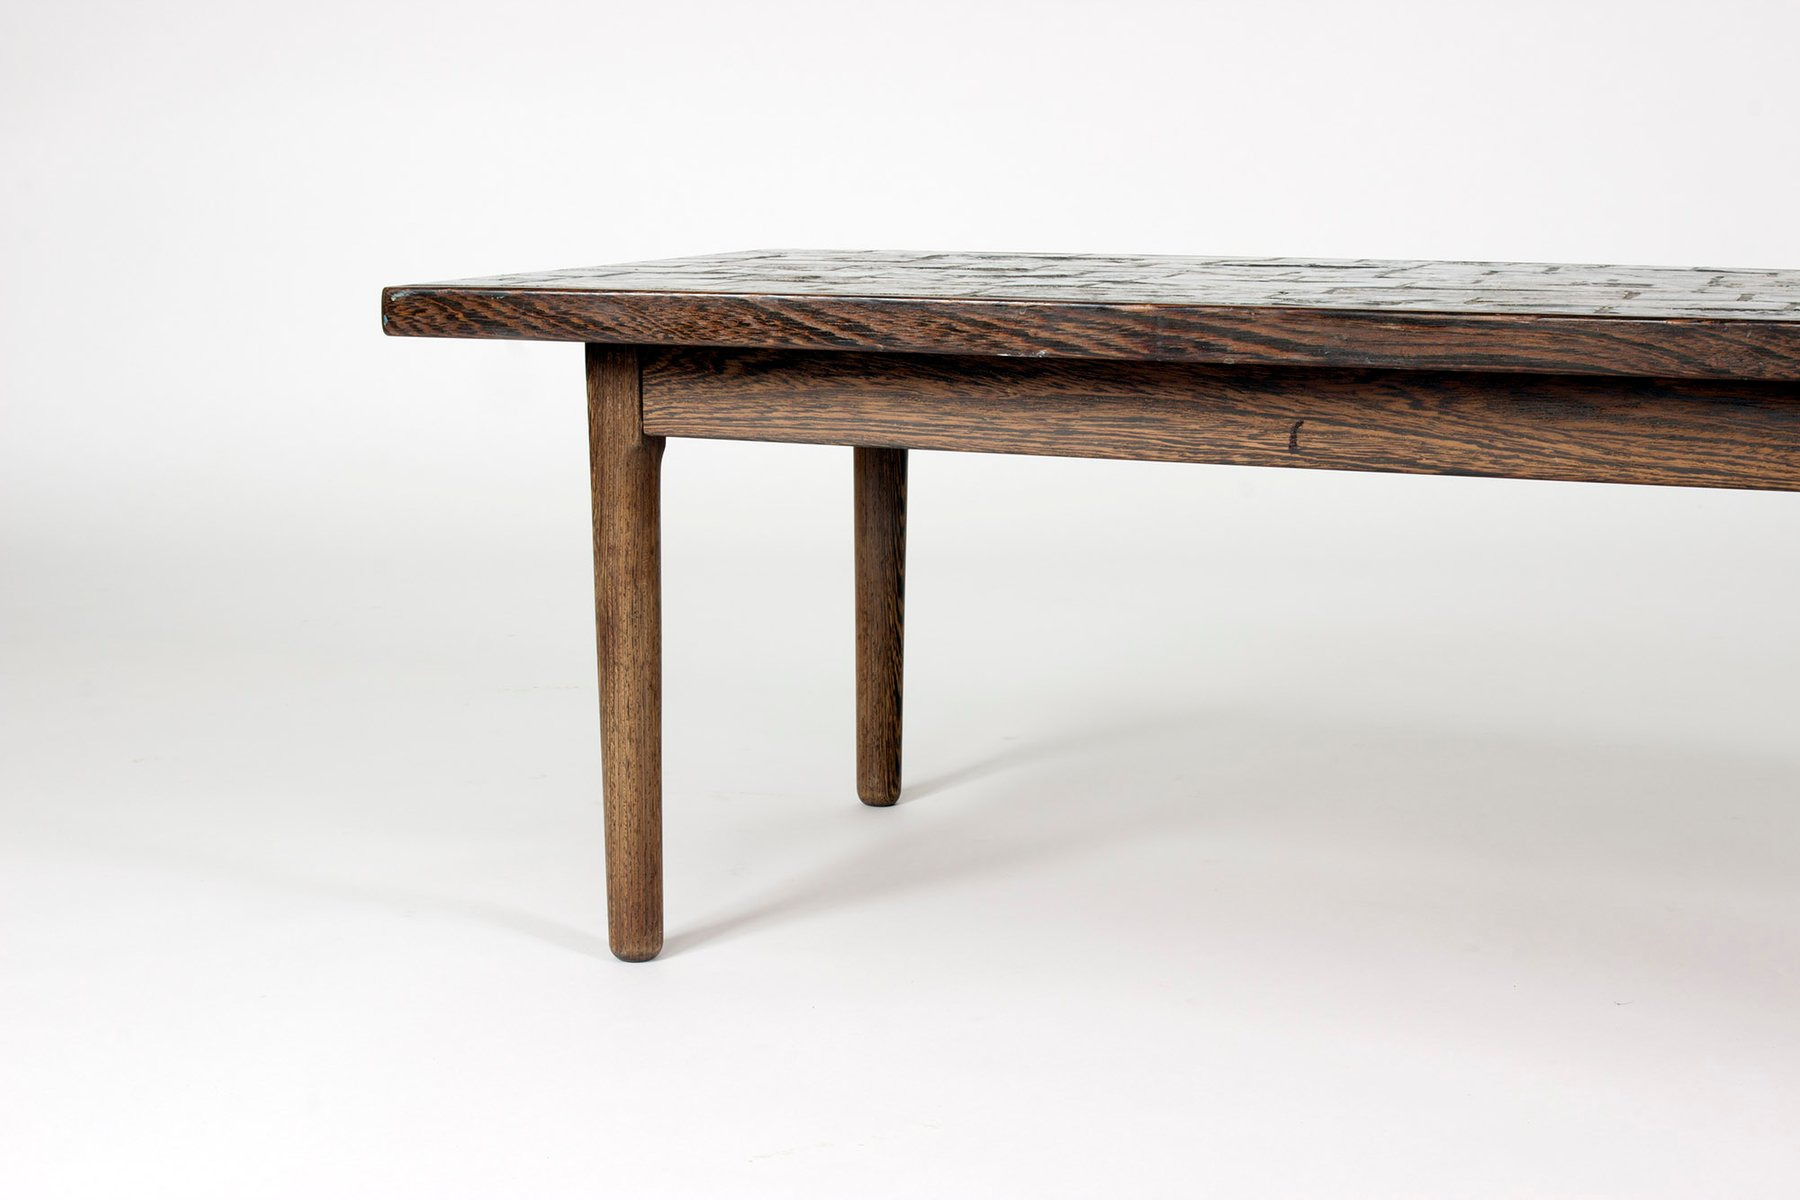 Wenge and stoneware coffee table by bj rn wiinblad 1960s for sale at pamono Wenge coffee tables